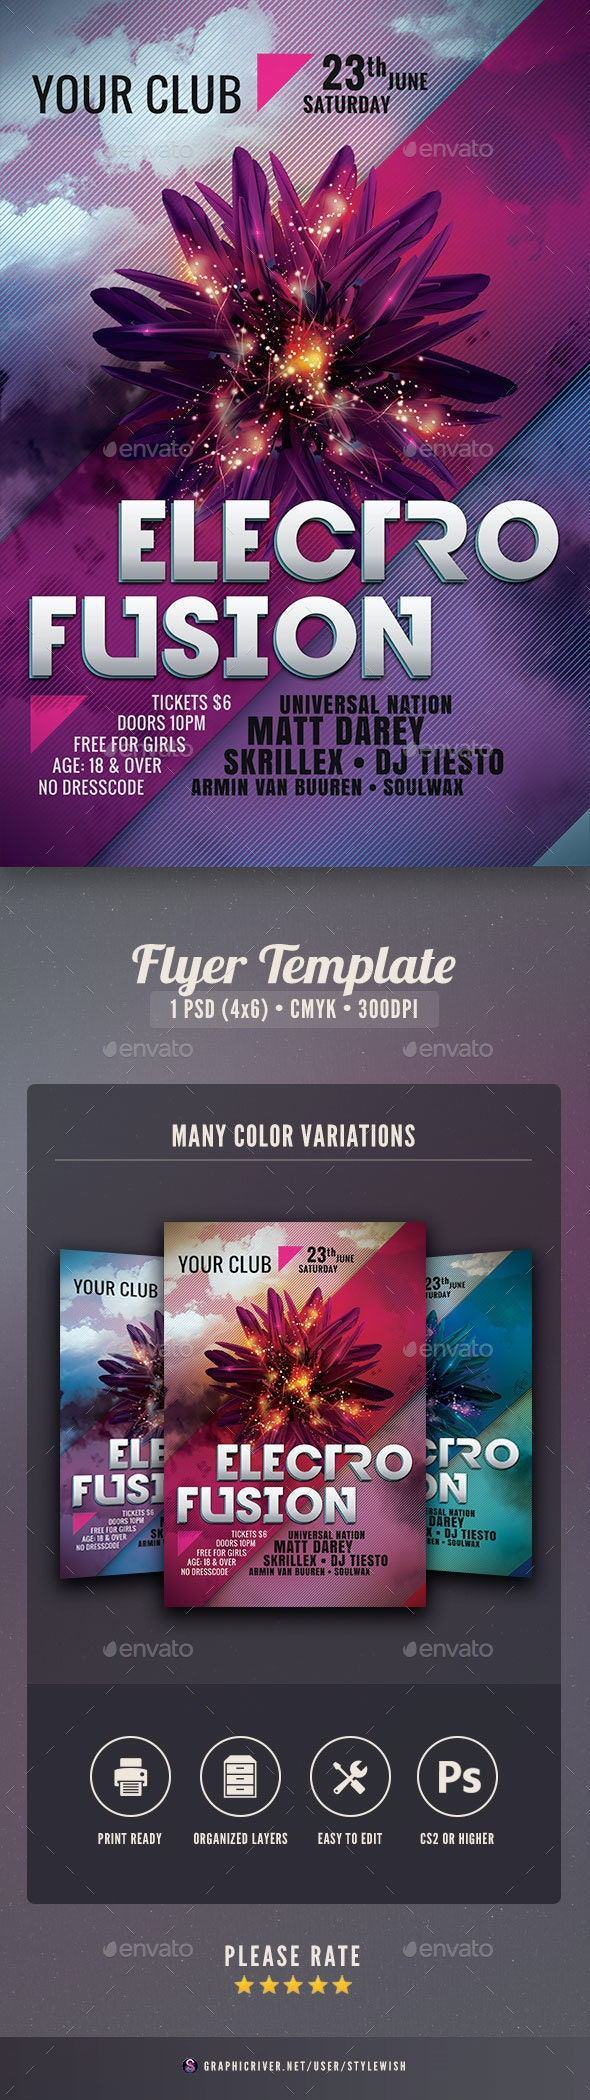 Electro Fusion Flyer - Clubs & Parties Events